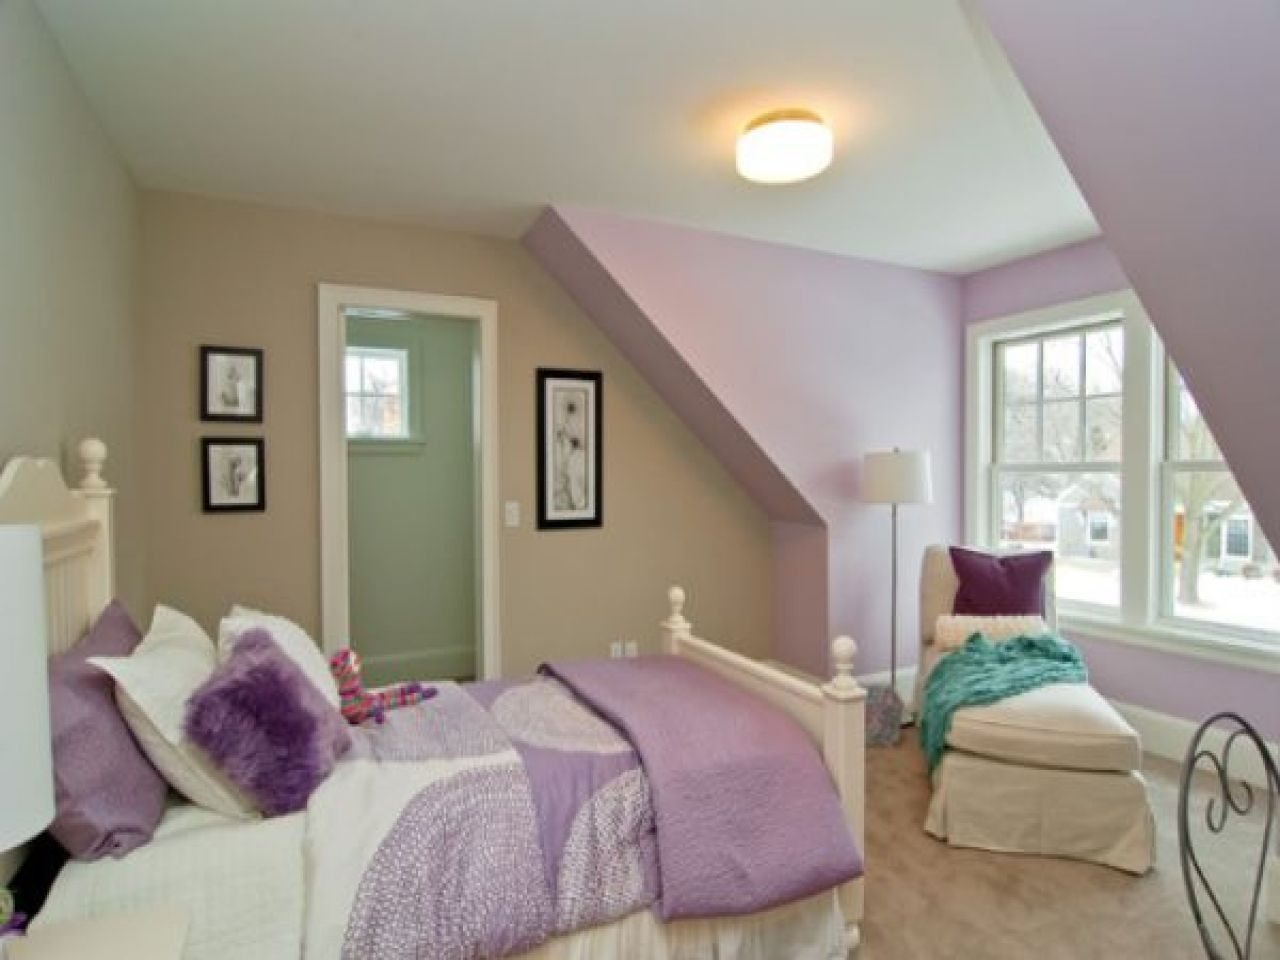 Purple And Tan Bedroom Ideas Part - 29: Classic Lavender, Tan And Sage. Love This For A Girlu0027s Room This Is The